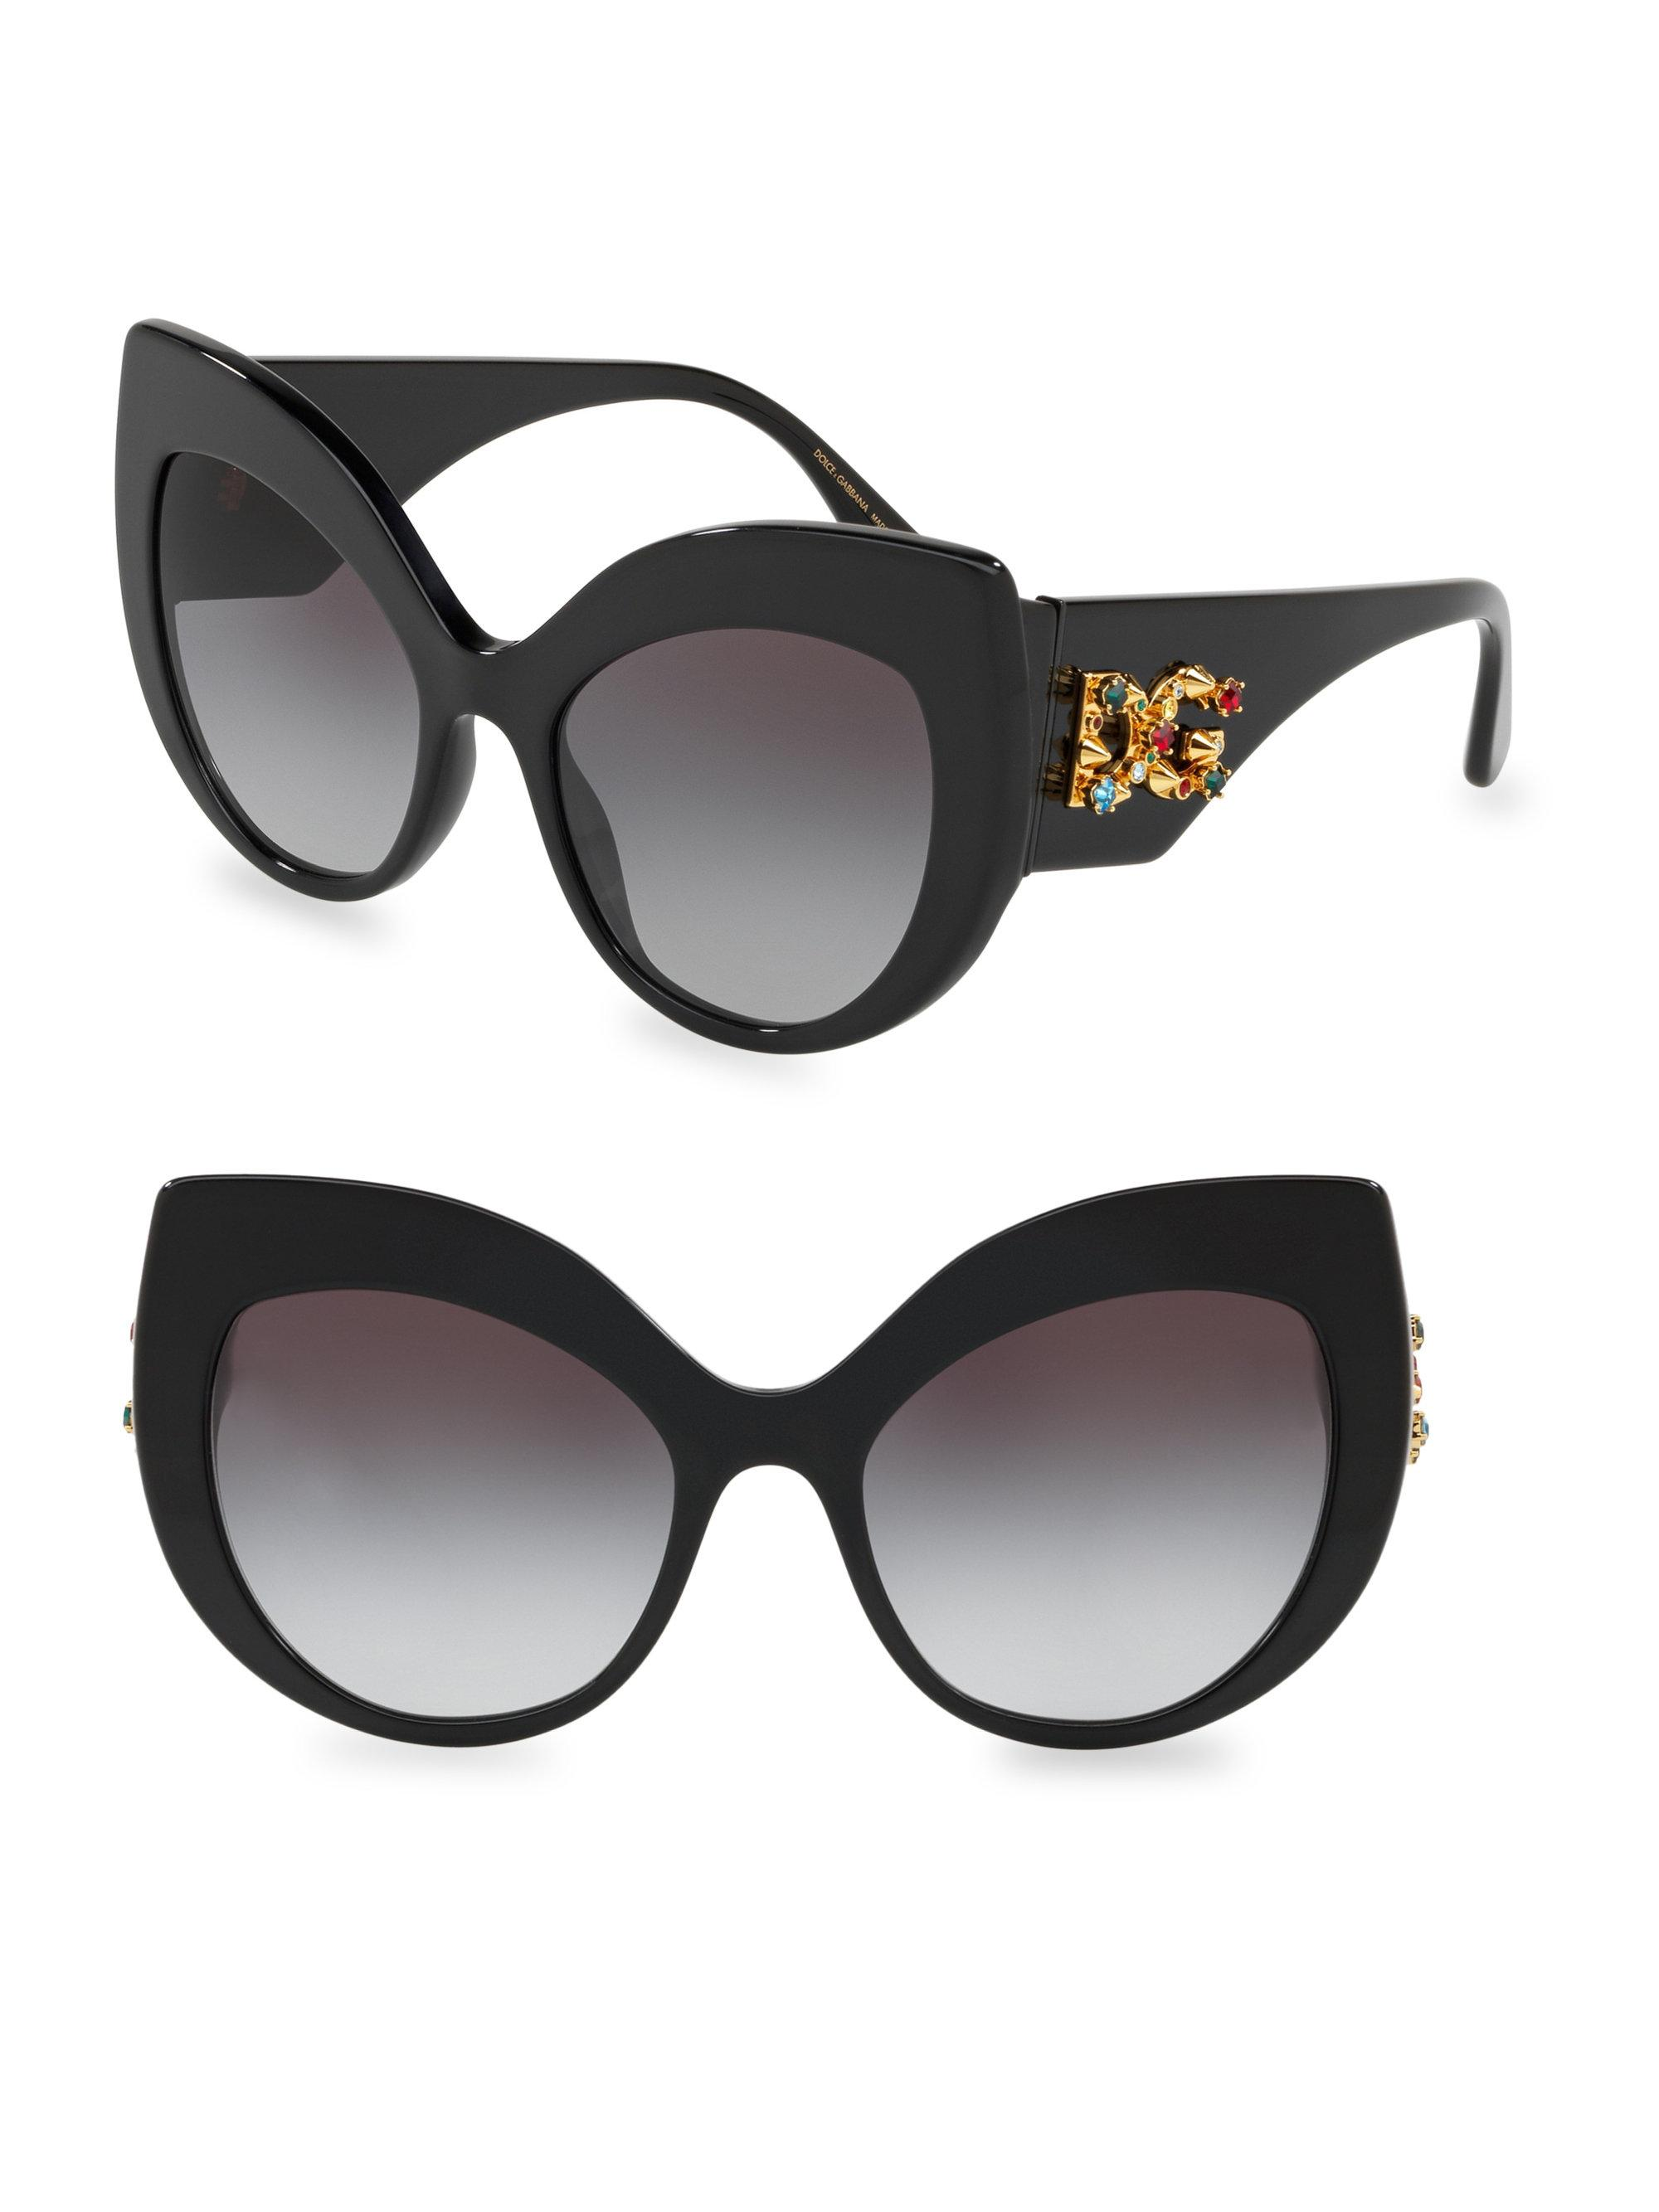 bcdb0fa80006 Lyst - Dolce   Gabbana 55mm Cat Eye Sunglasses in Black